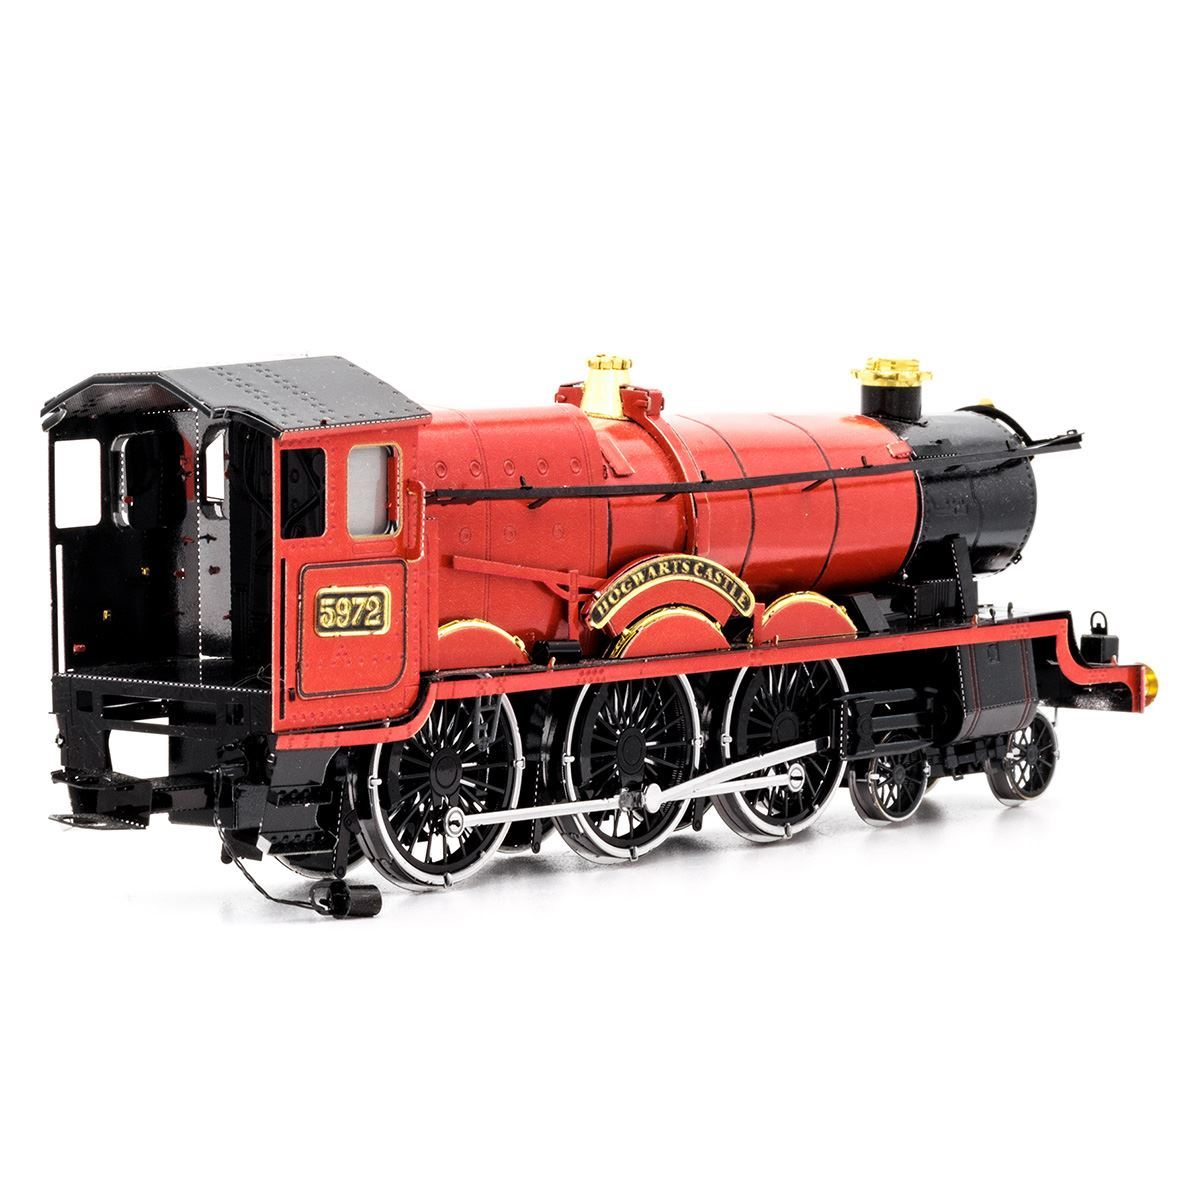 Fascinations Metal Earth ICONX Harry Potter HOGWARTS EXPRESS 3D Model Kit ICX137